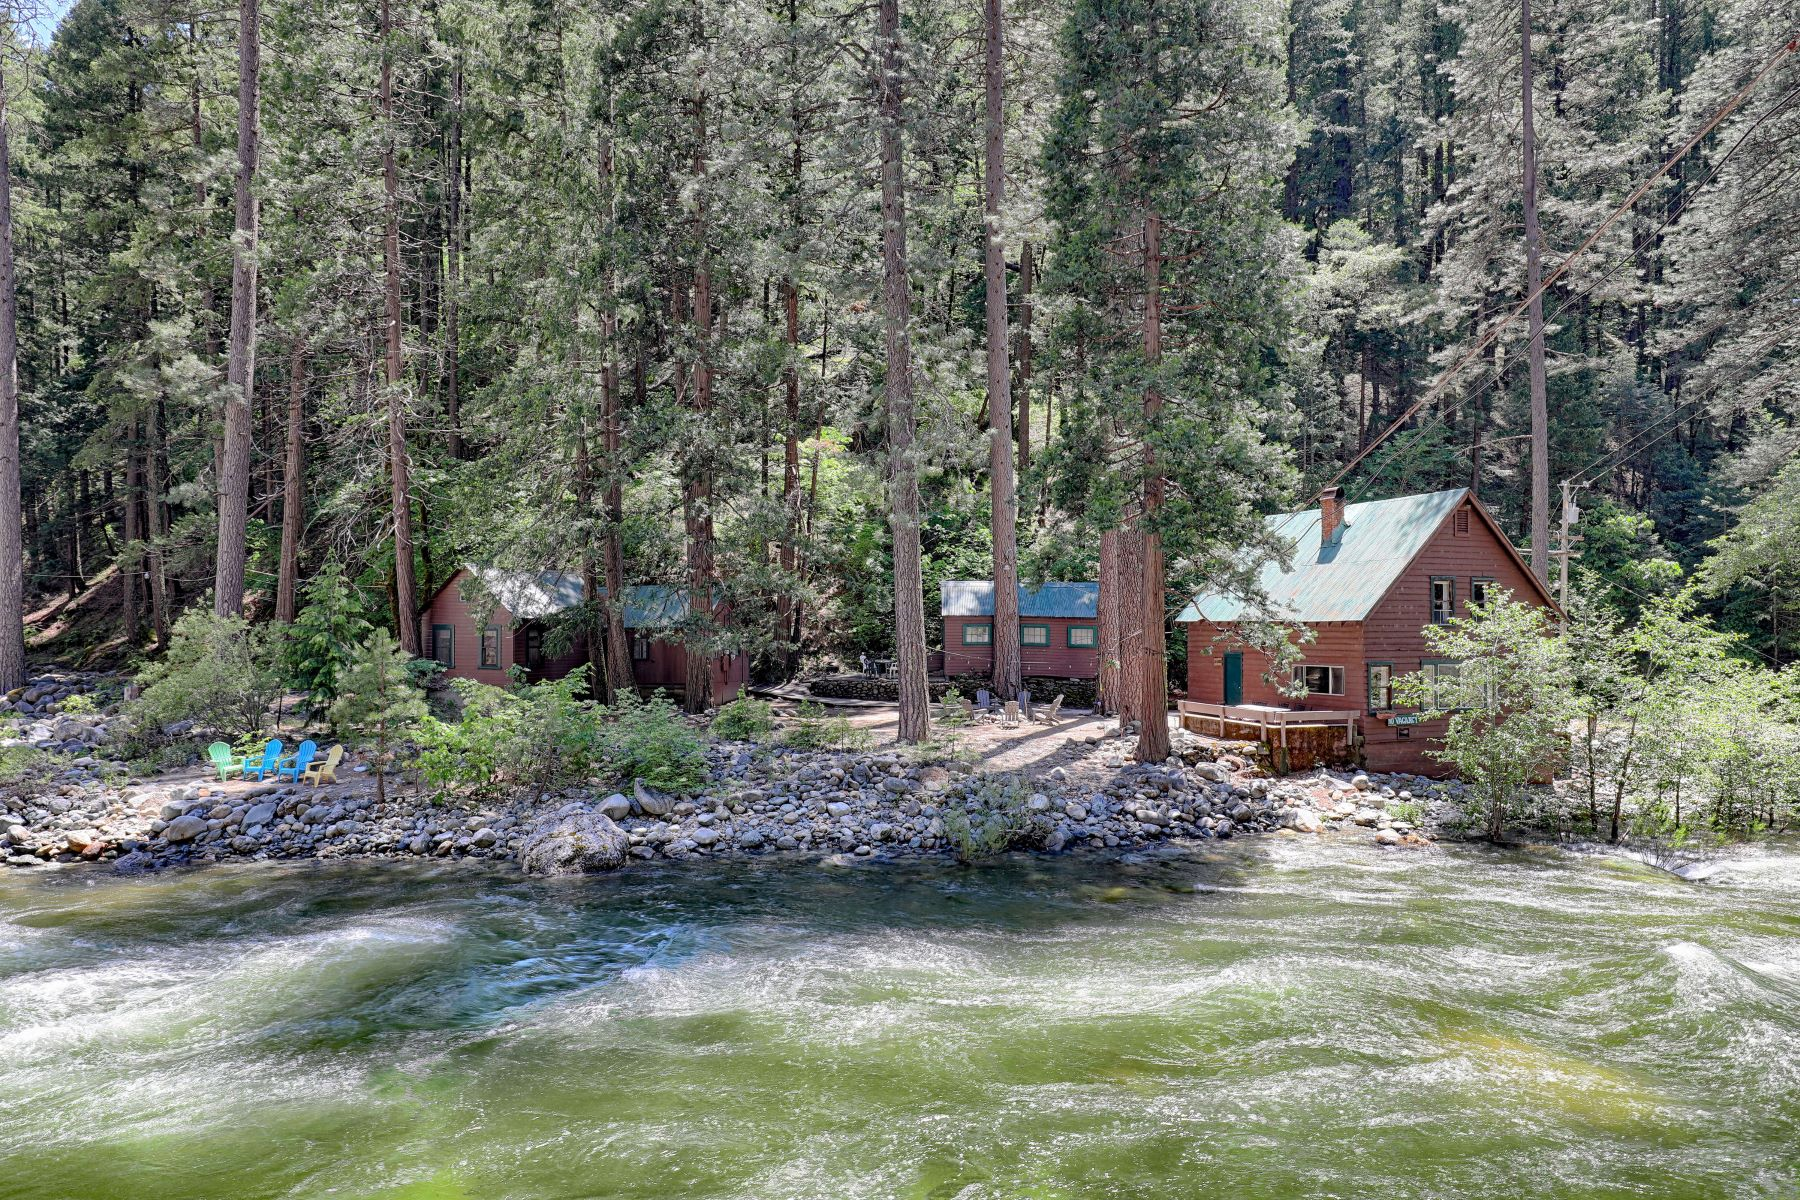 Other Residential Homes 为 销售 在 Recreational Opportunity 21622-2162 Hwy 49 Downieville, 加利福尼亚州 96125 美国